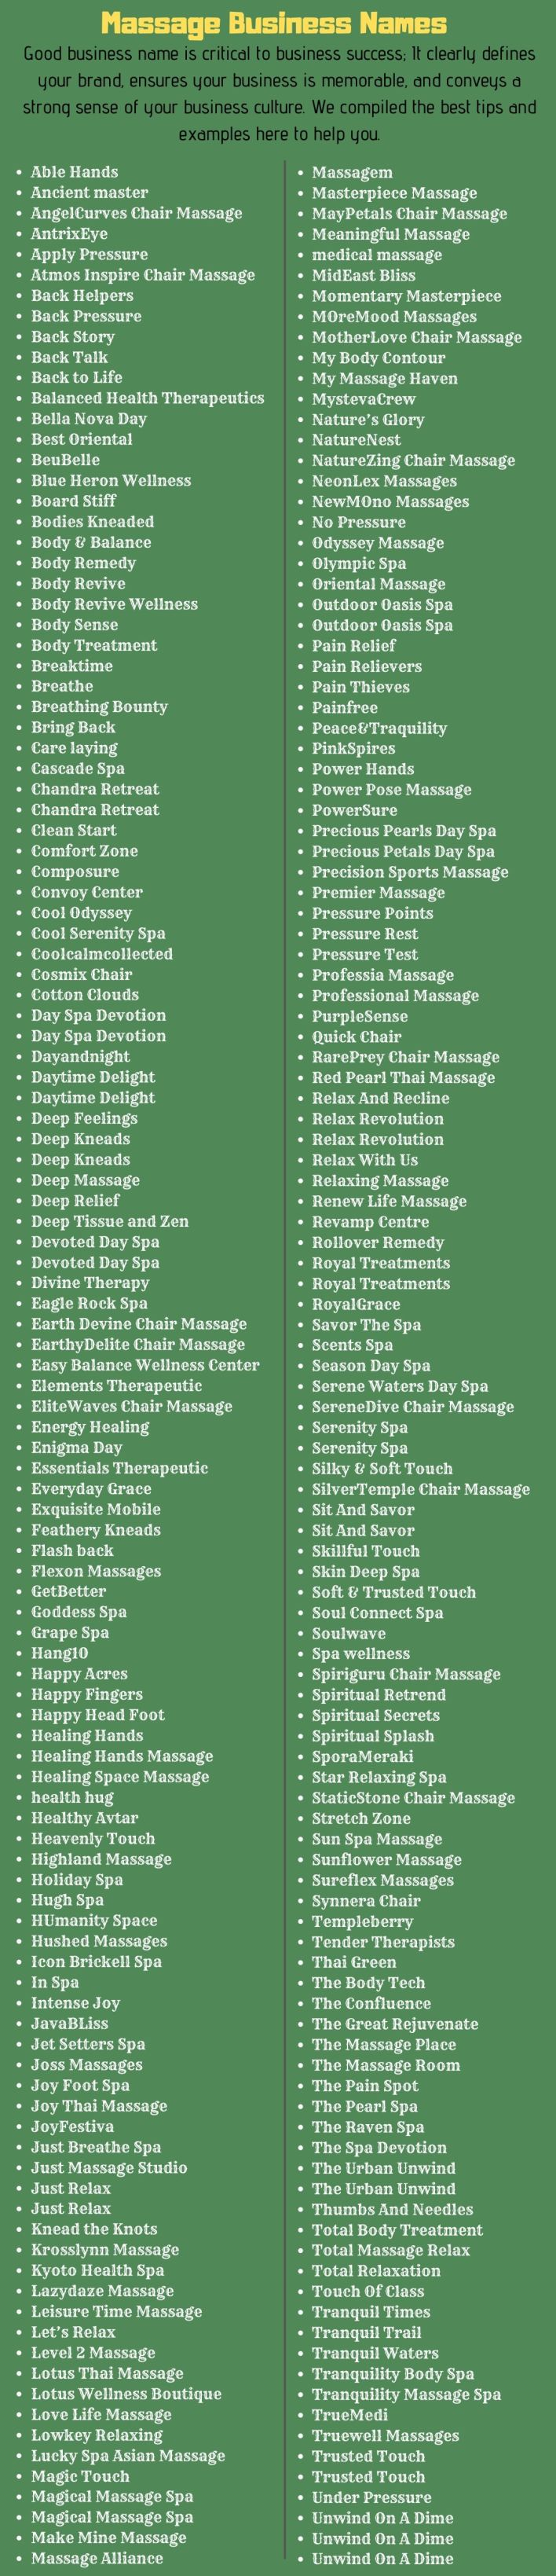 Massage Business Names